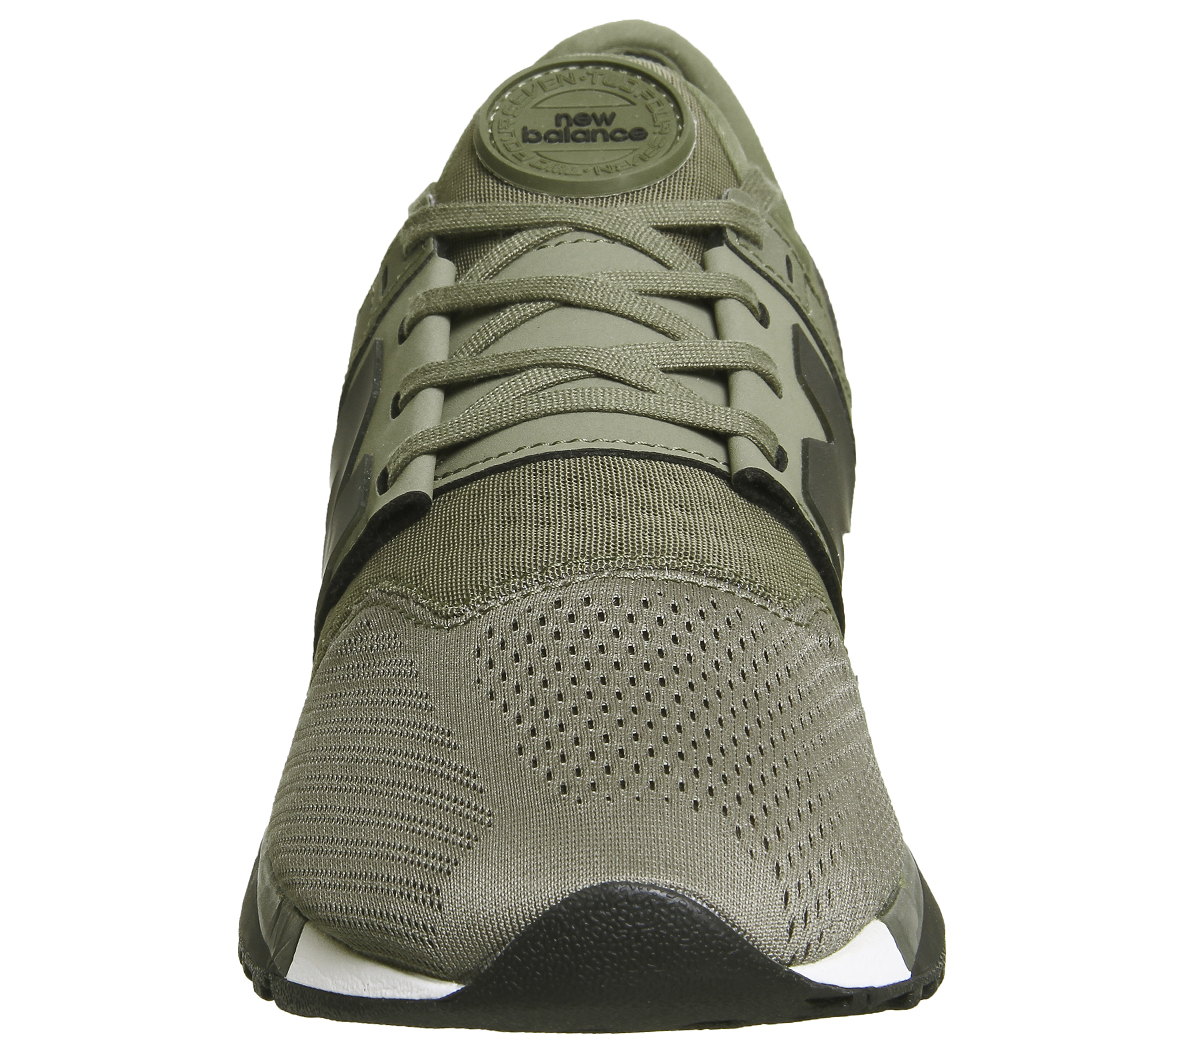 bb483af3612 Sentinel Mens New Balance 247 Trainers OLIVE Trainers Shoes